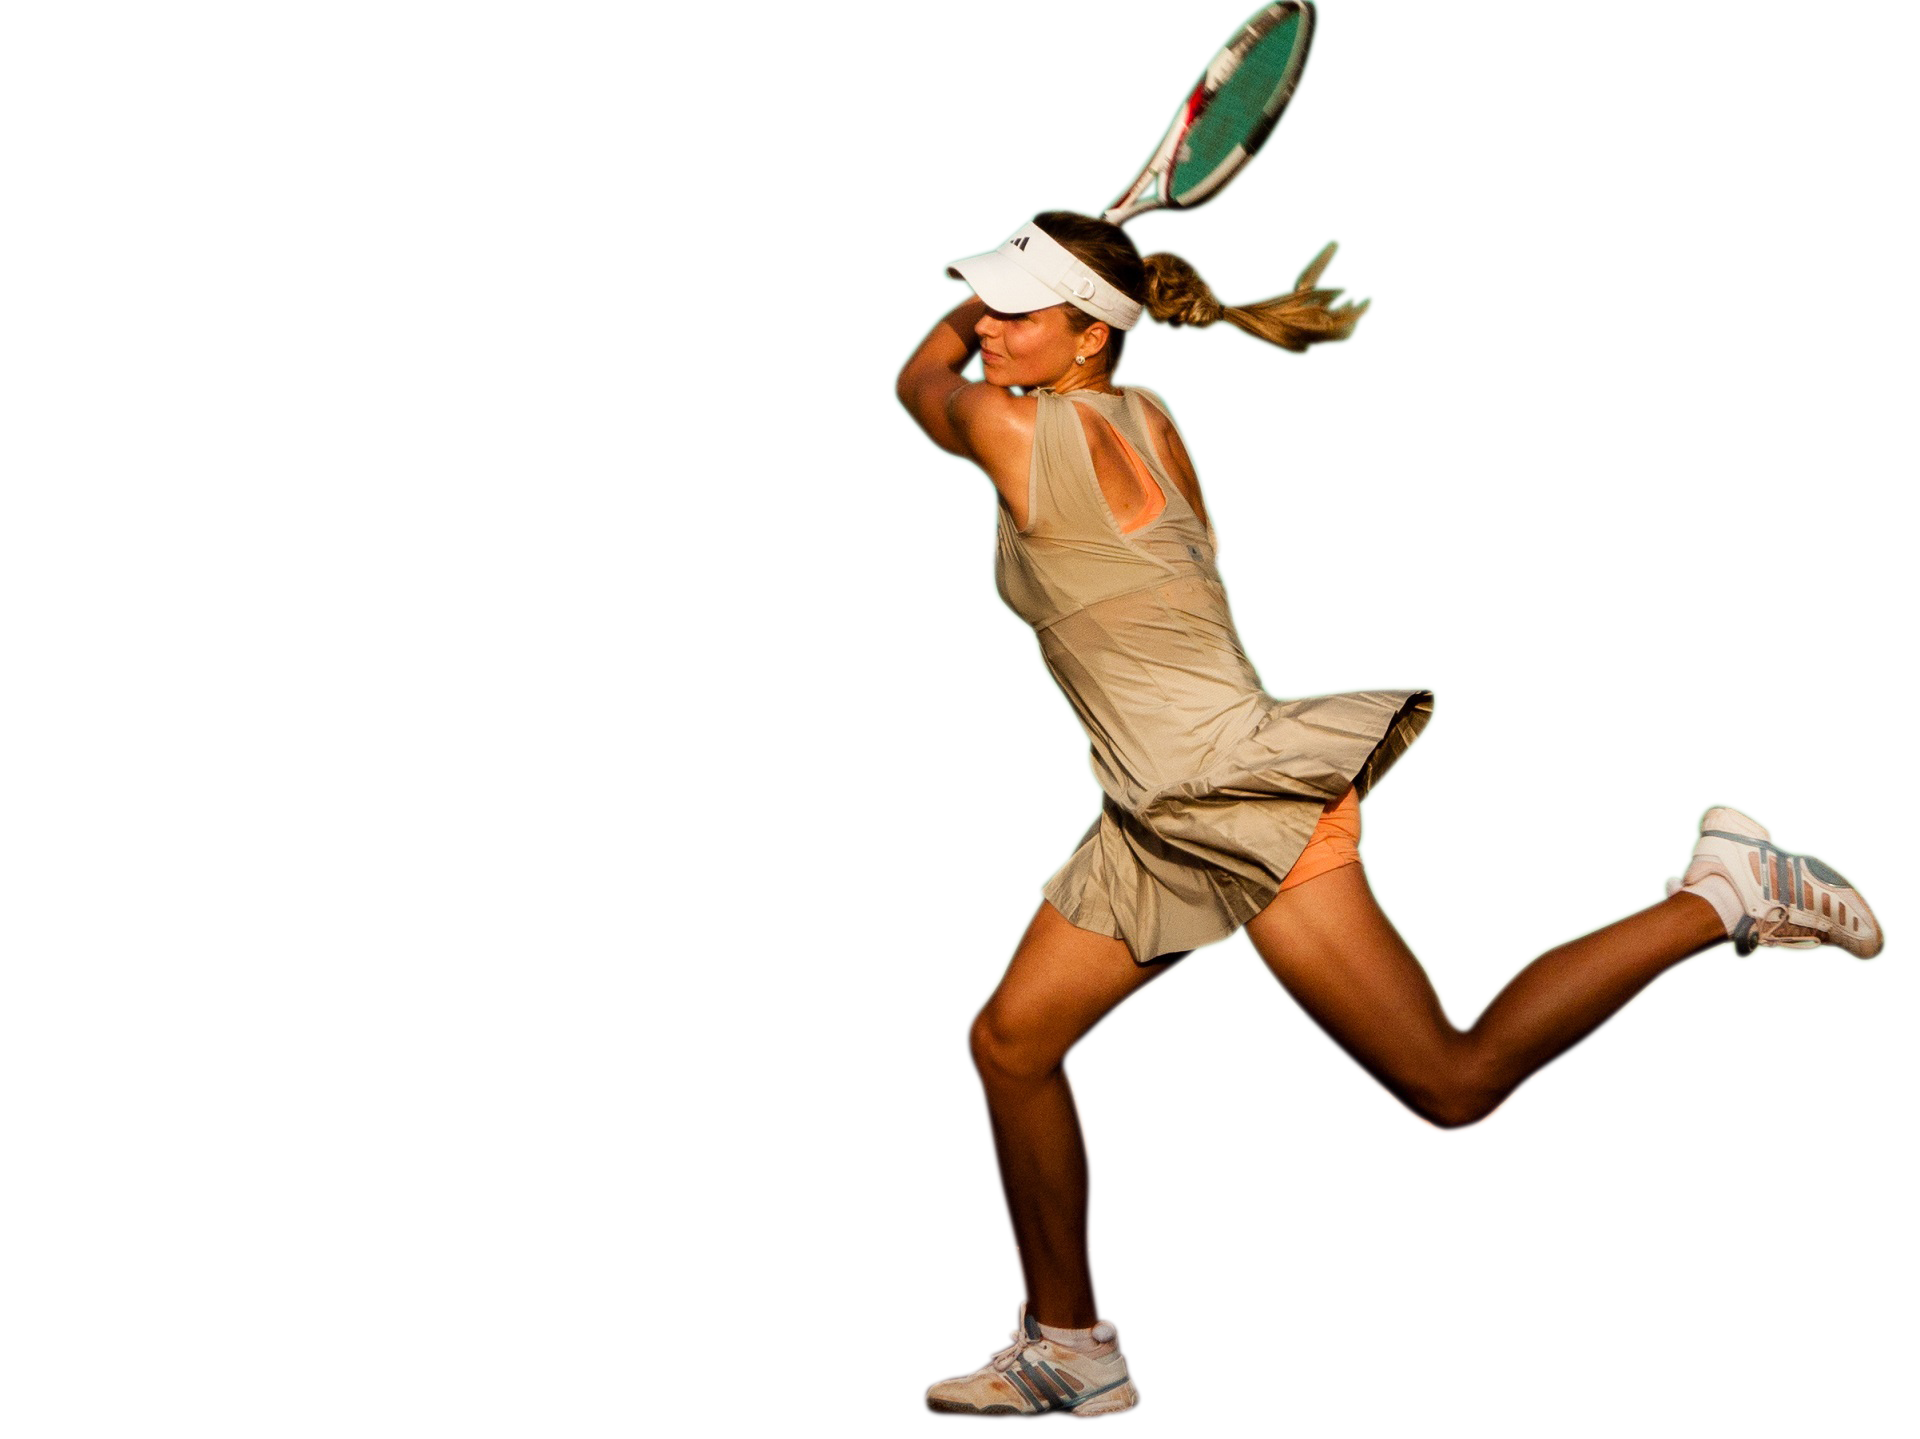 tennis-player-1246768_Clip